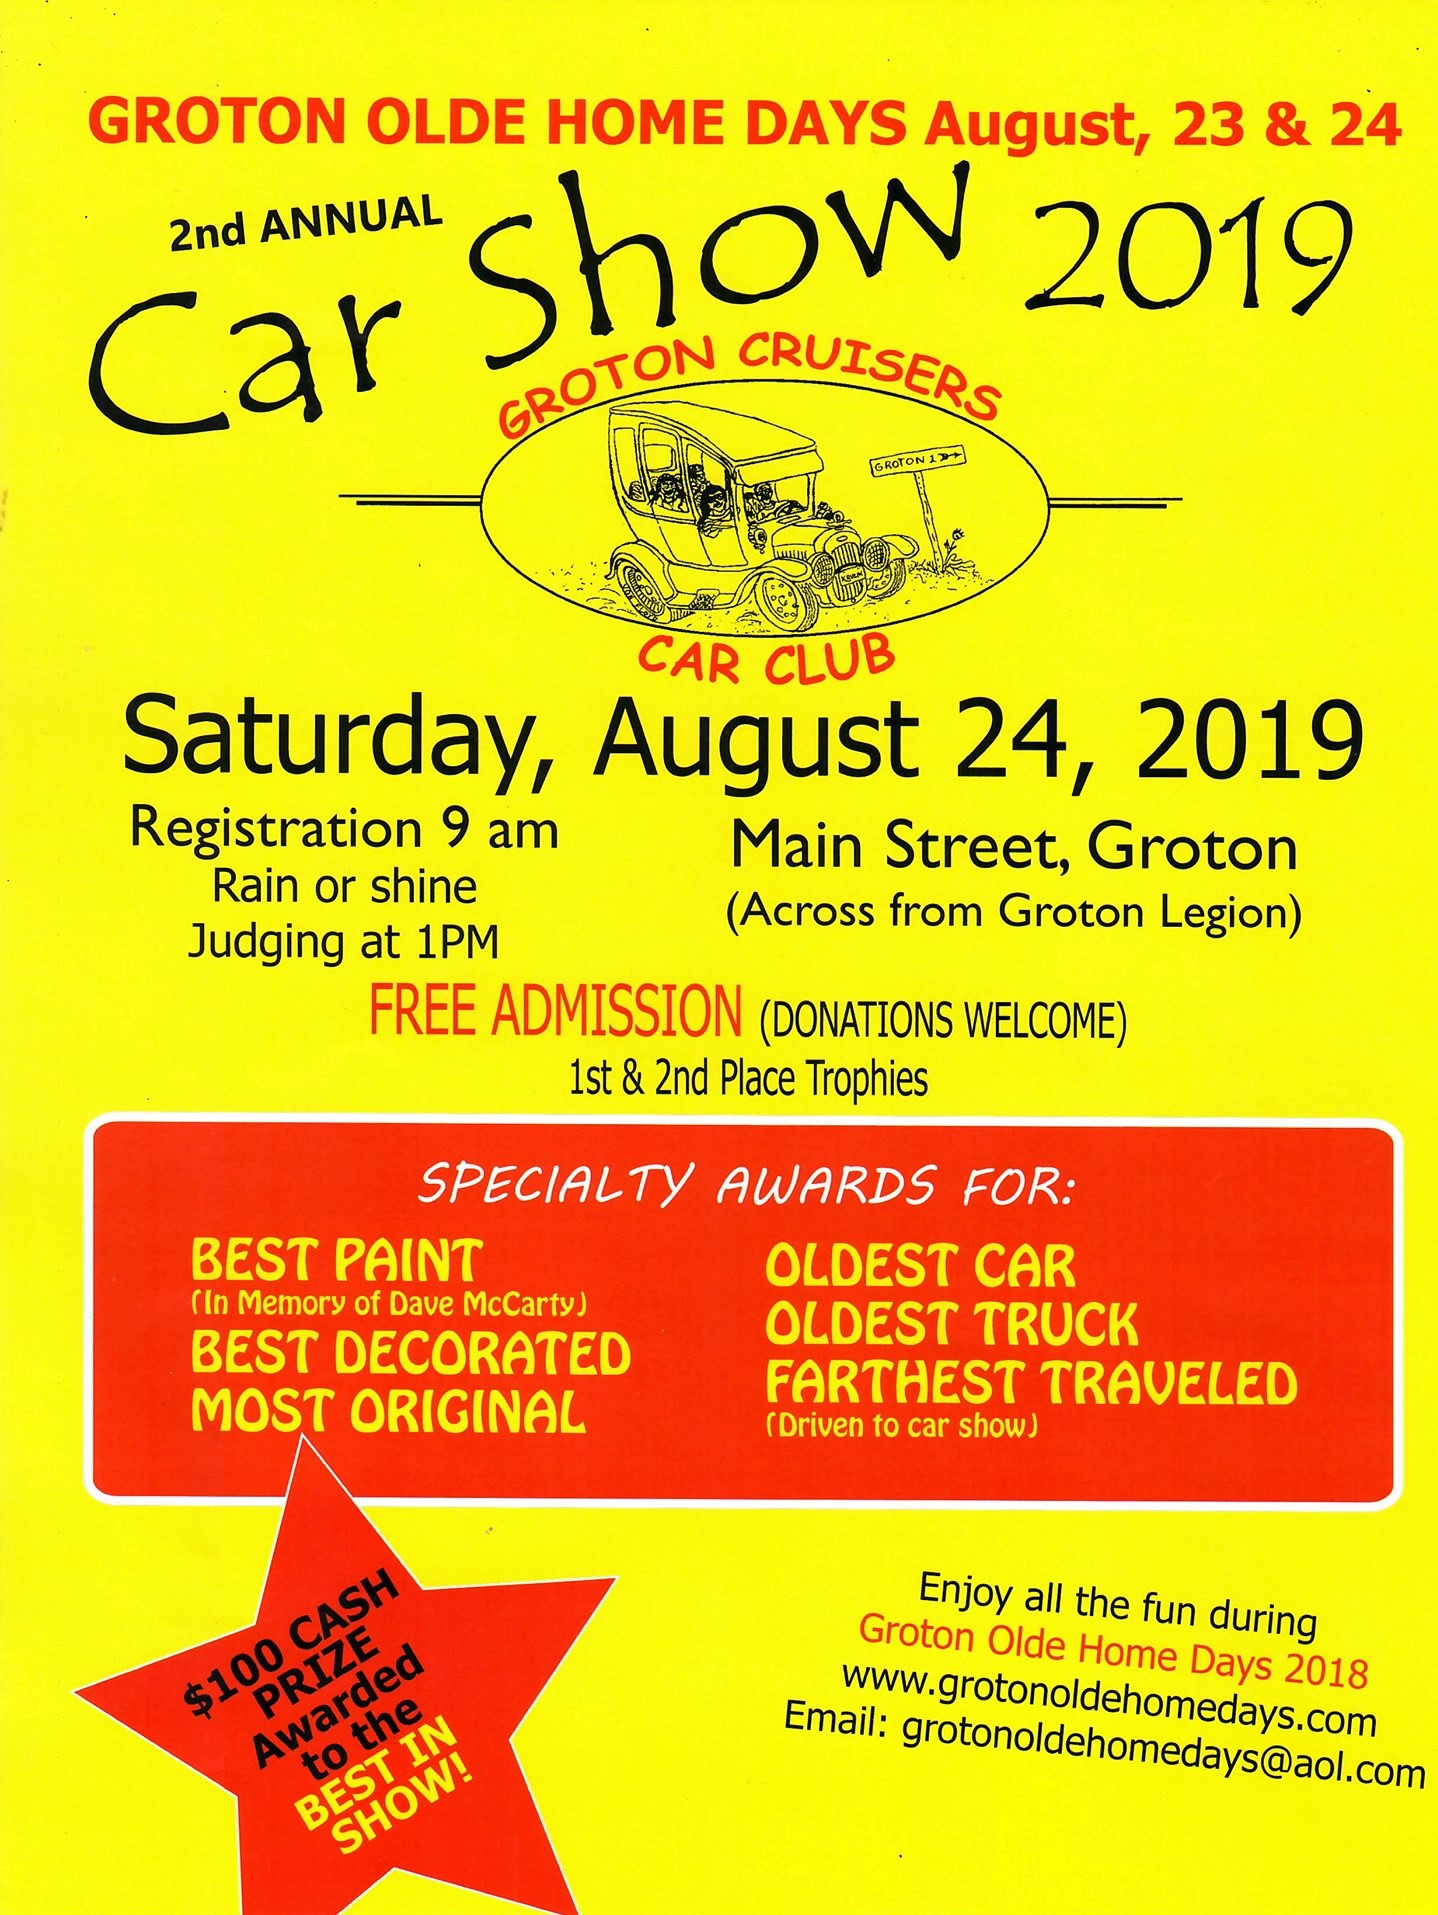 Groton Olde Home Days 2nd Annual Car Show 2019